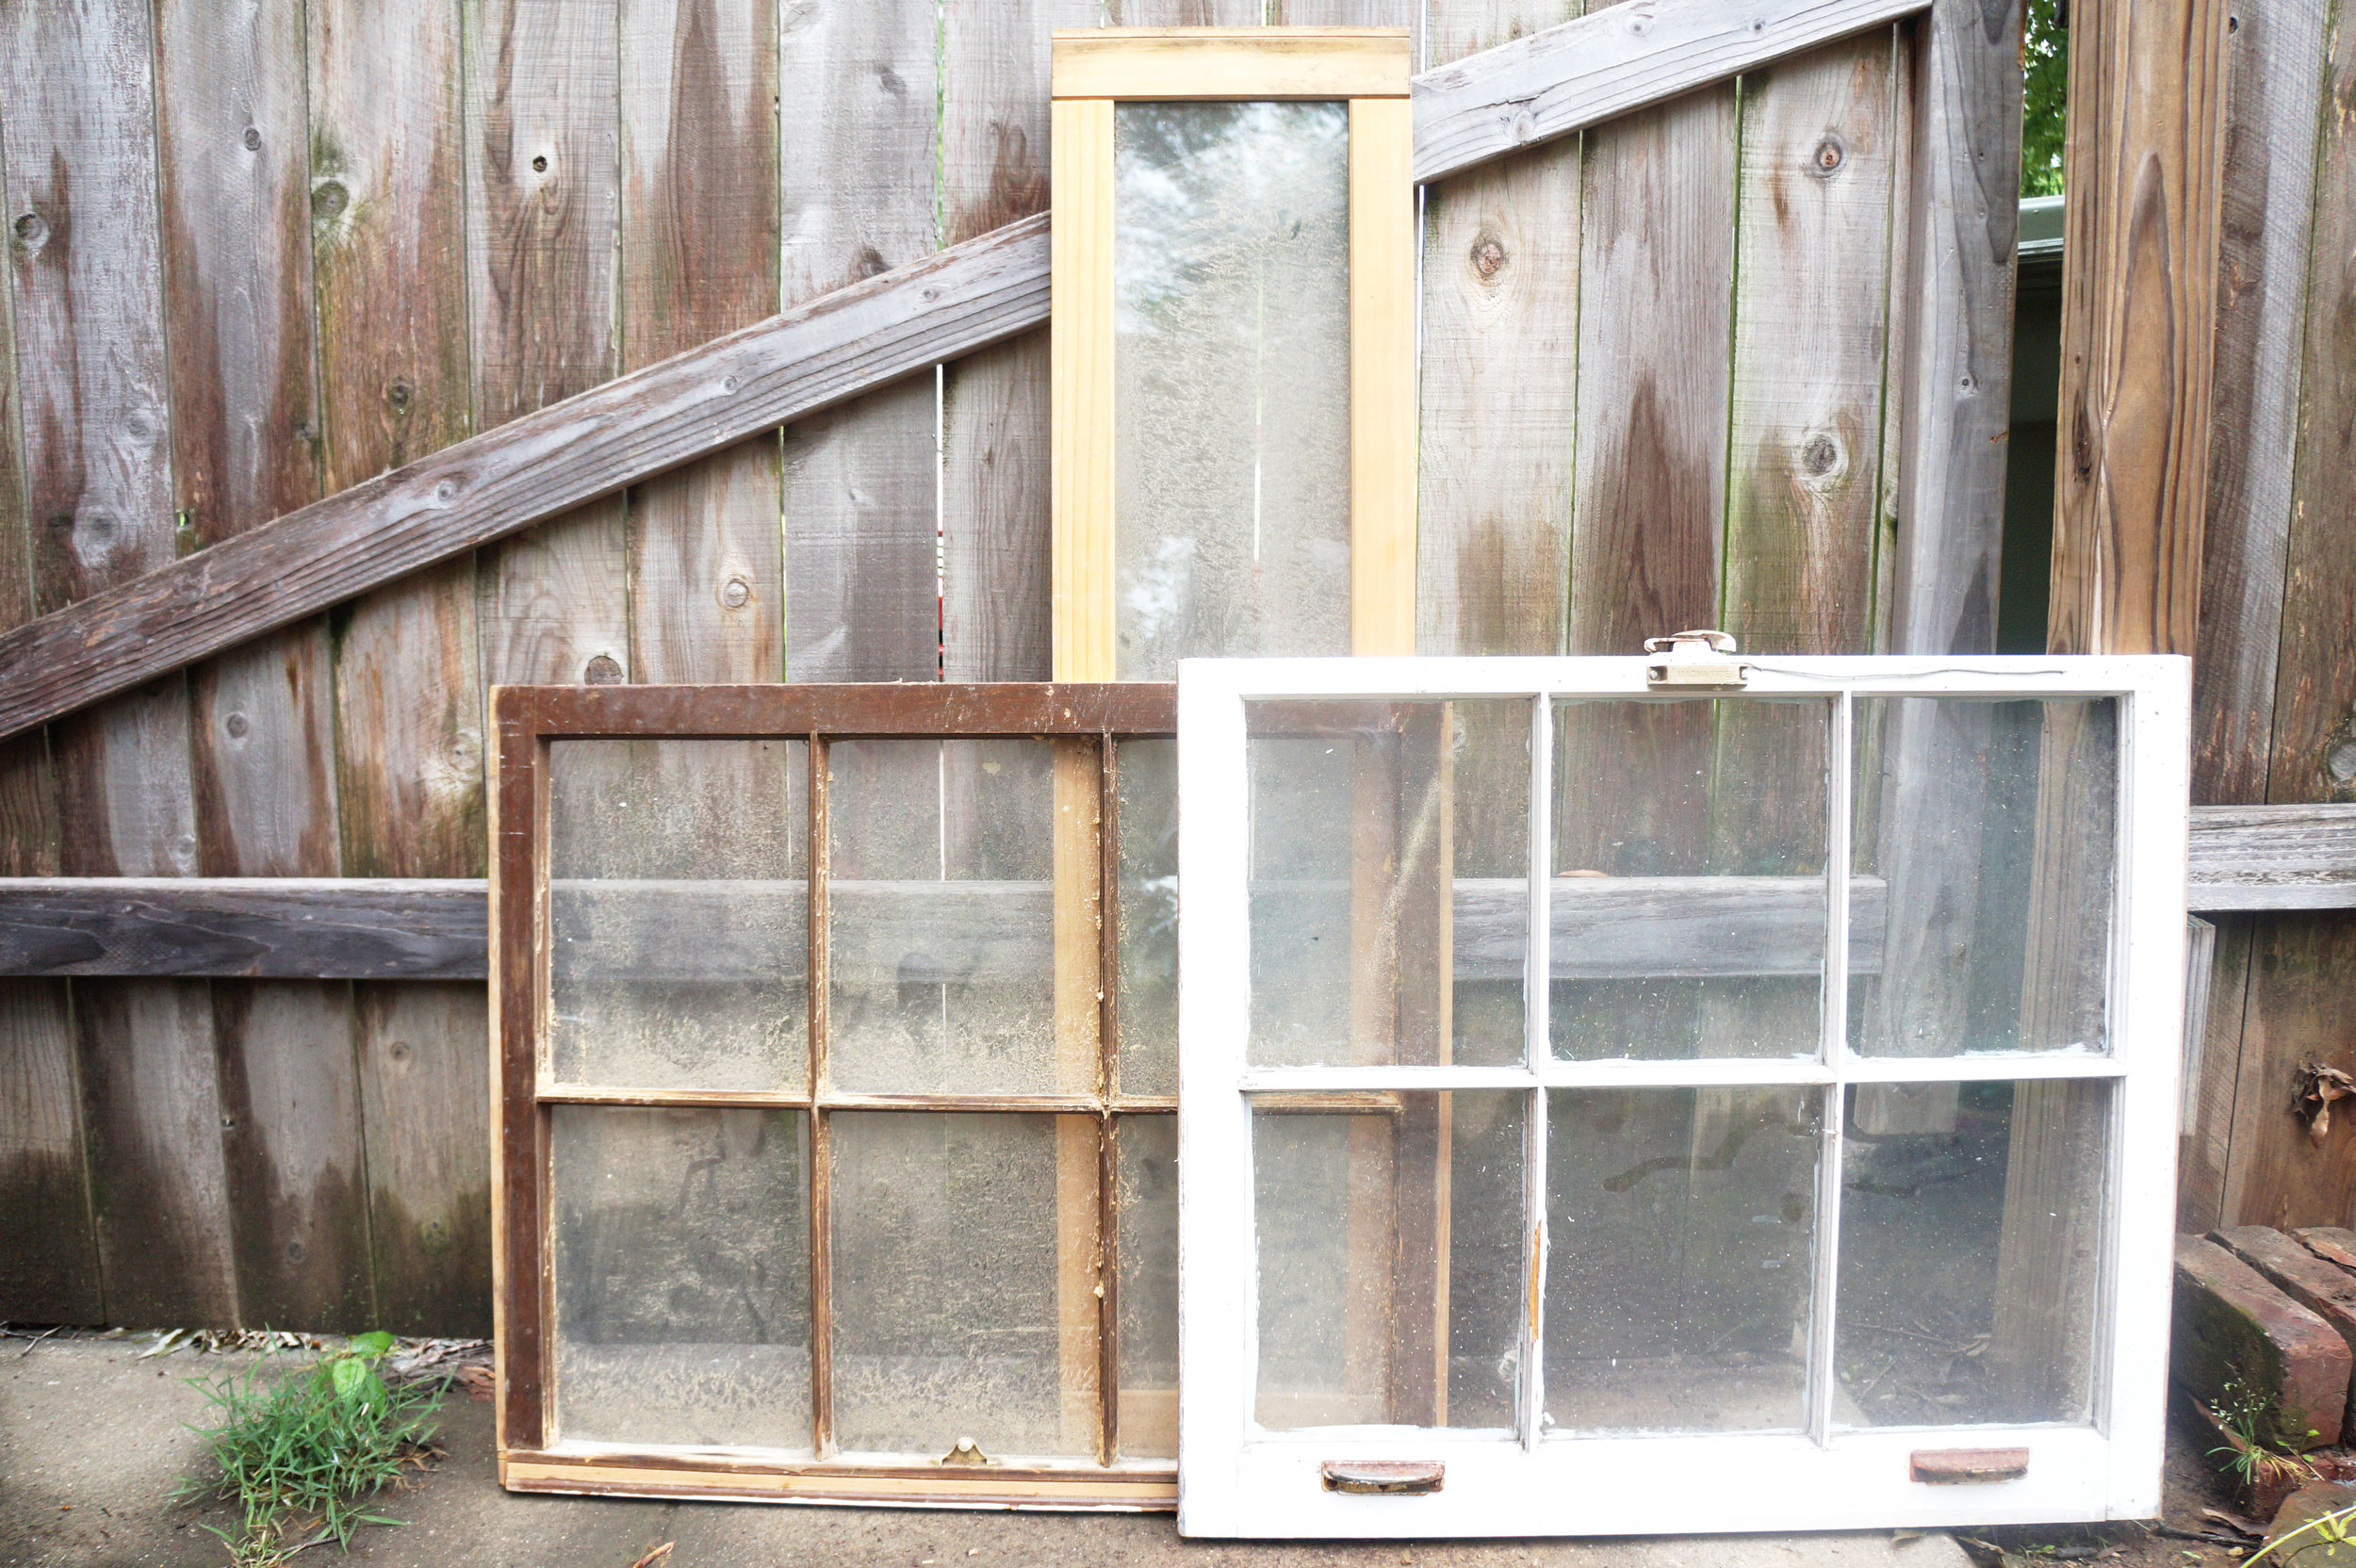 Andrea Fenise Memphis Fashion Blogger shares a few ideas of decorating with old window frames